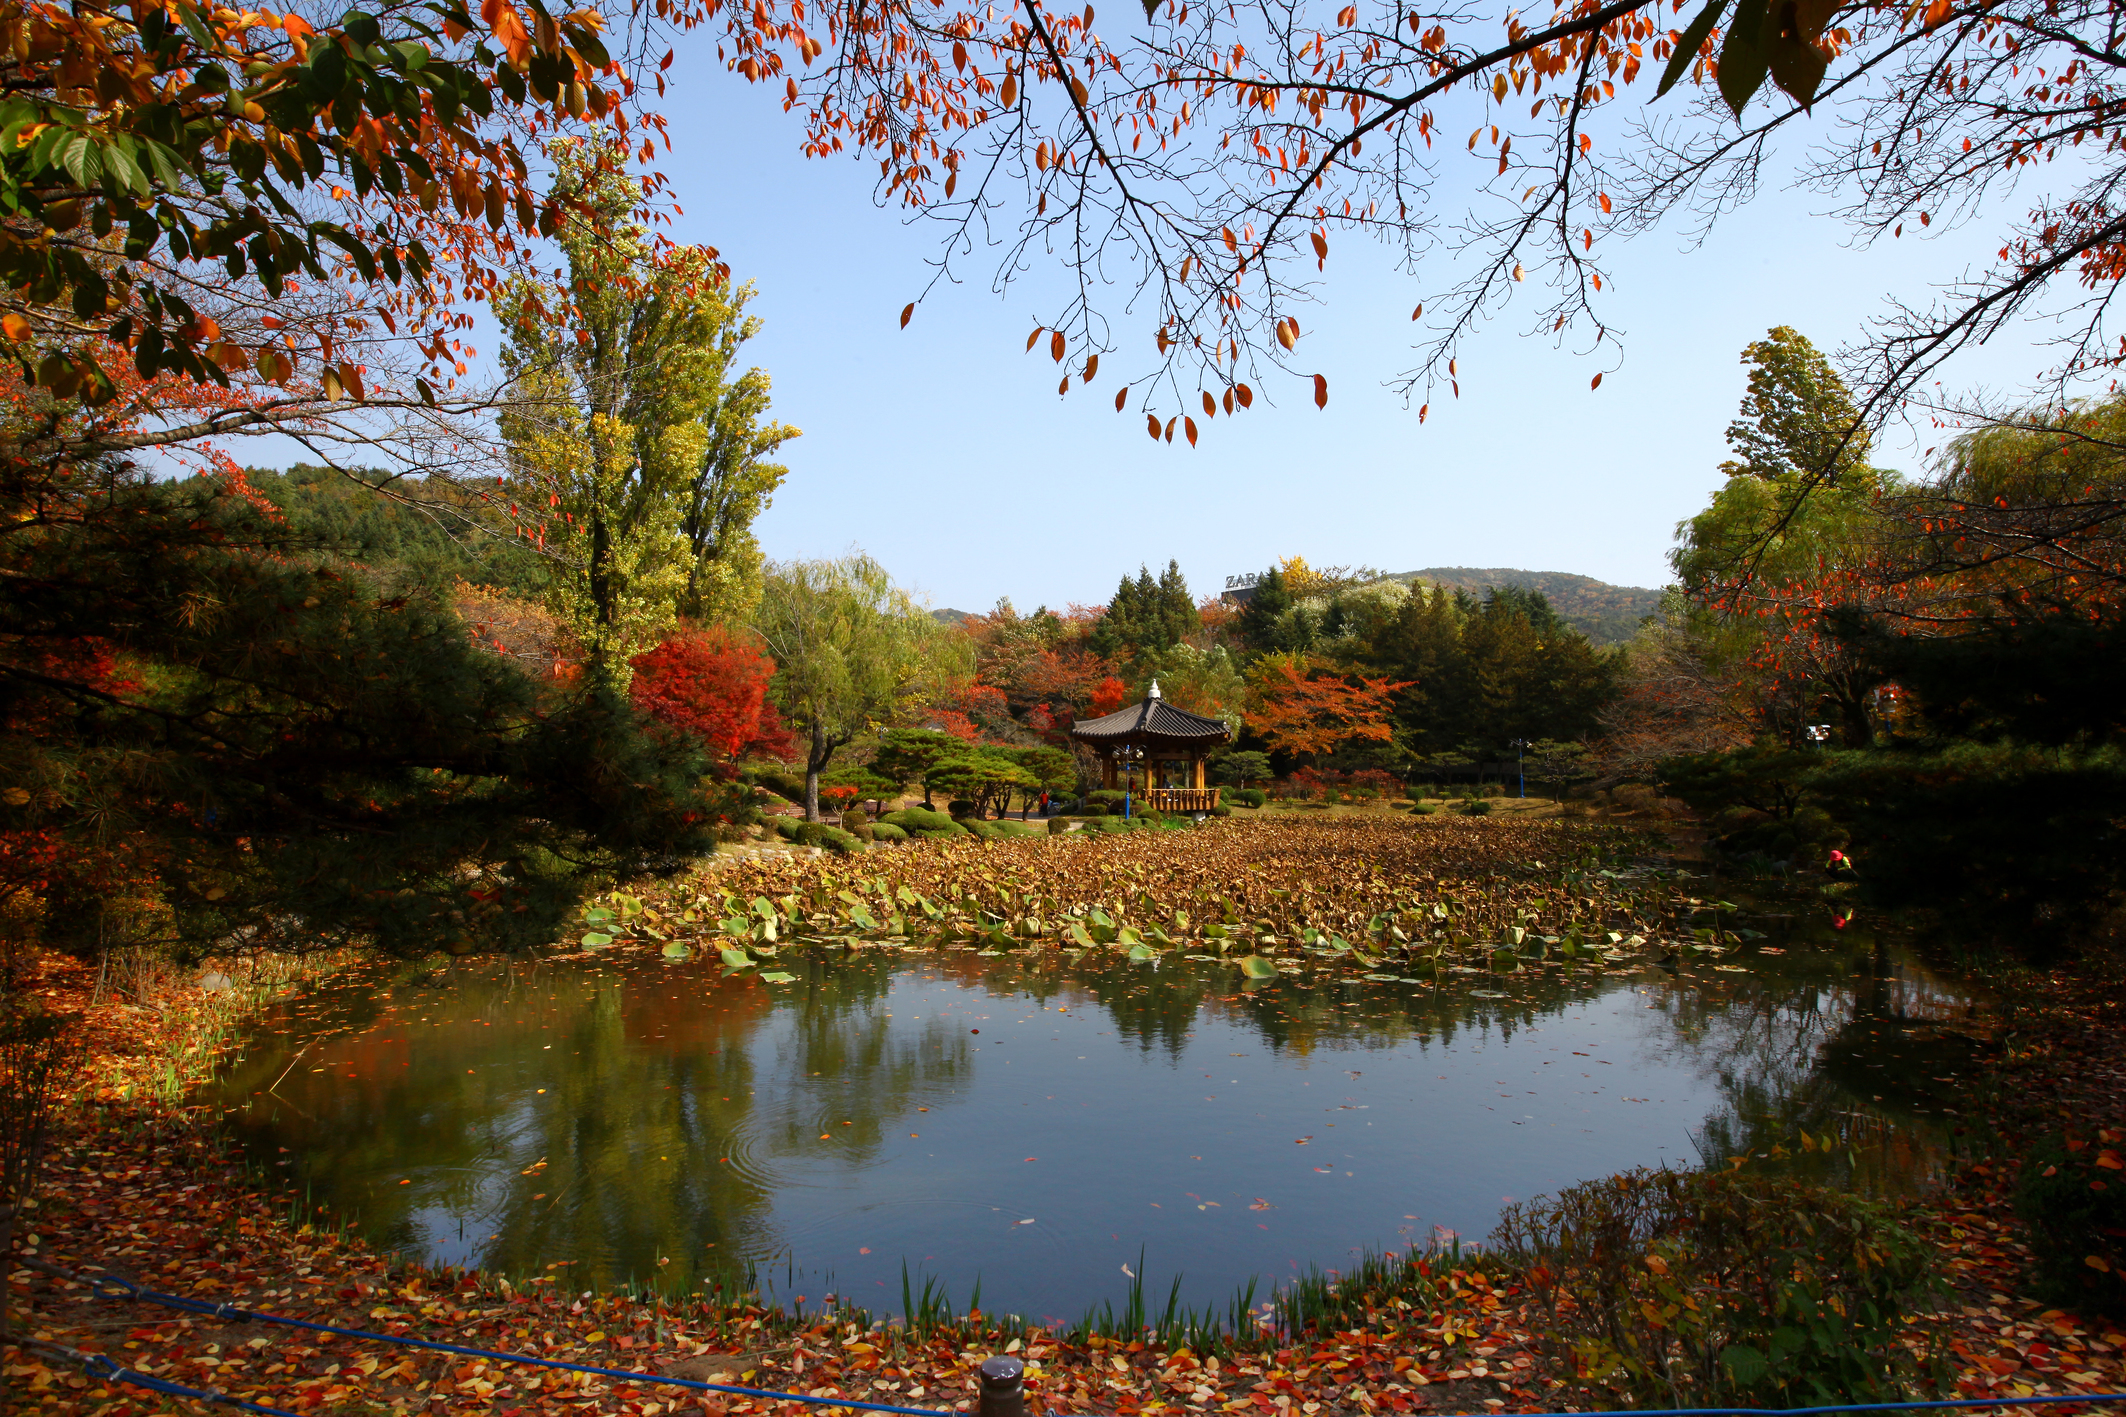 (Autumn) Gyeongju Foliage One Day Tour - Depart from Daegu